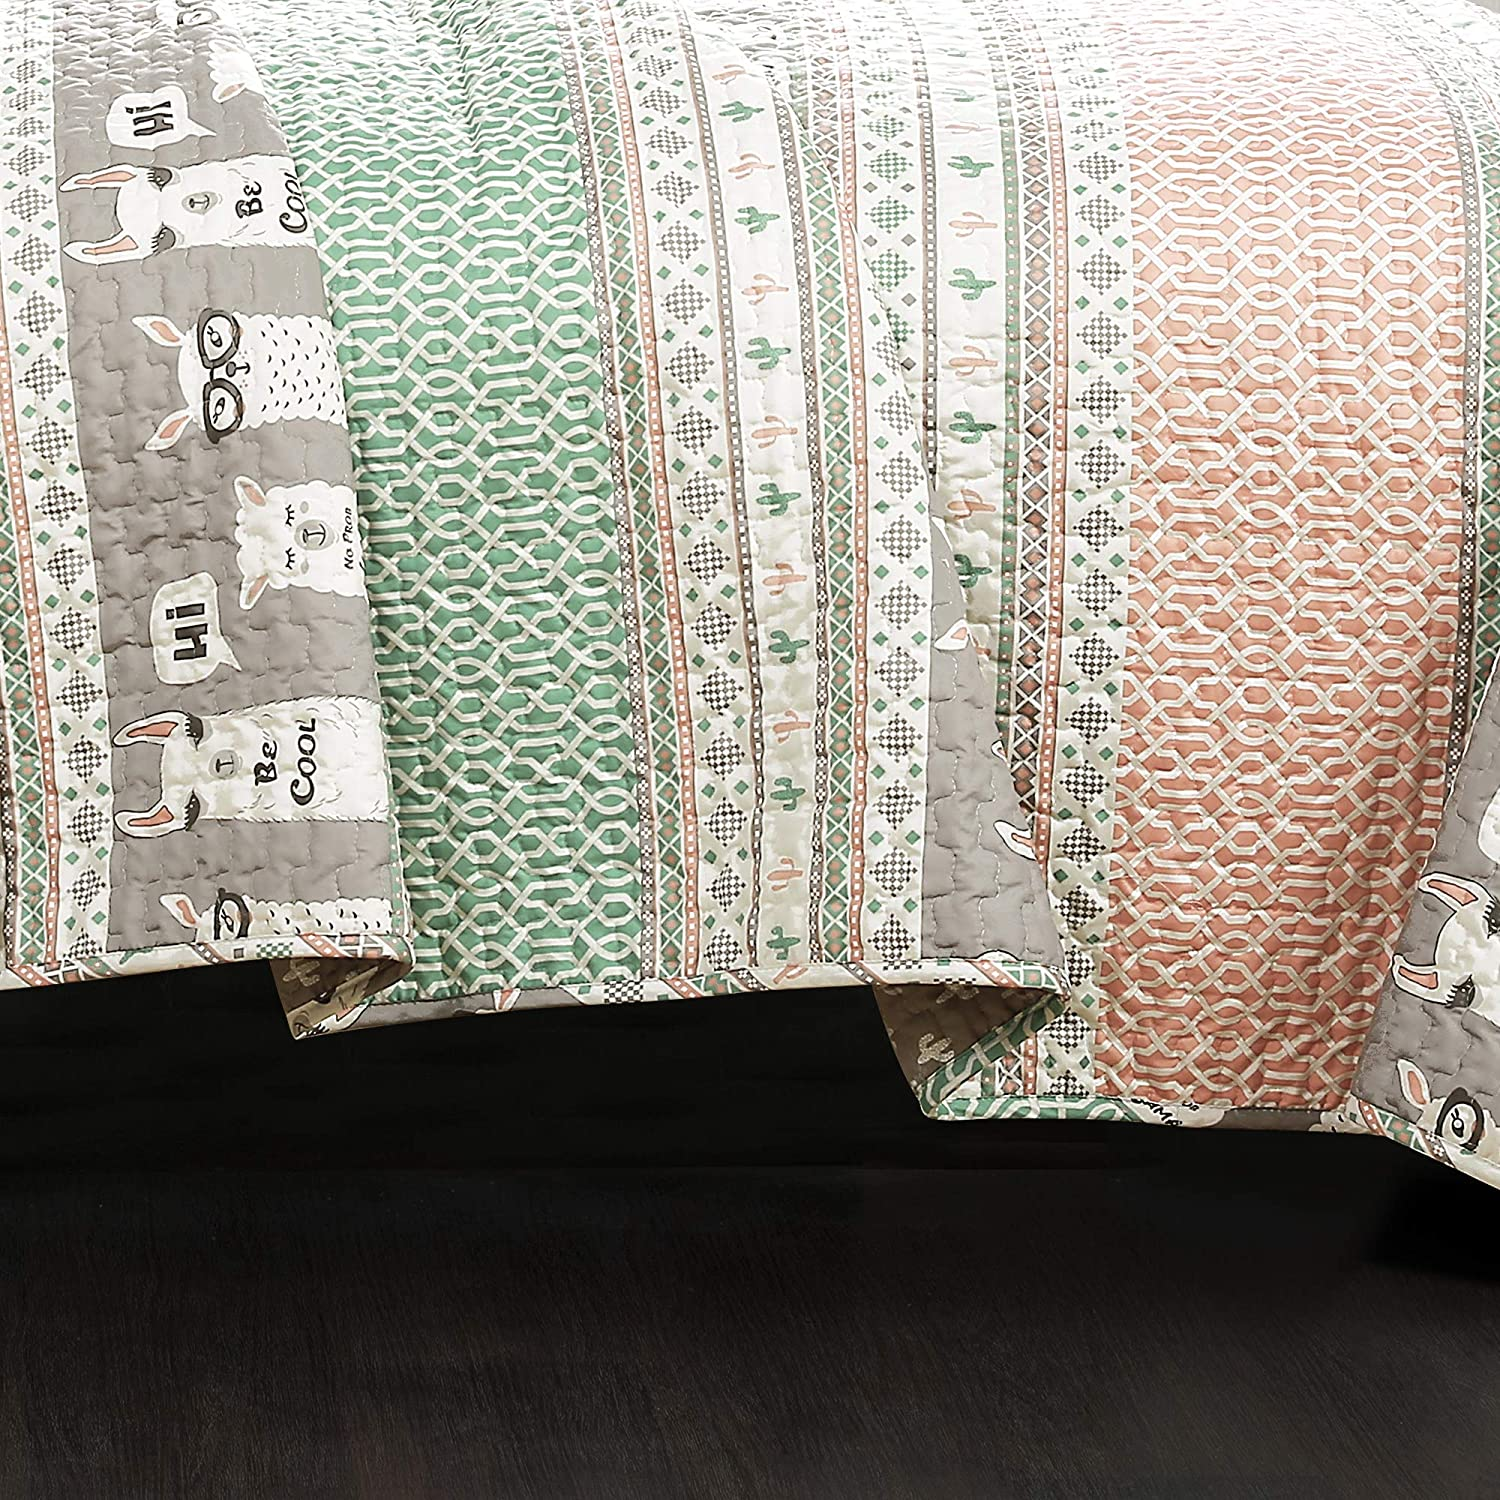 Pink and Turquoise Full Queen Lush Decor Llama Striped Quilt Reversible 5 Piece Kids Bedding Set